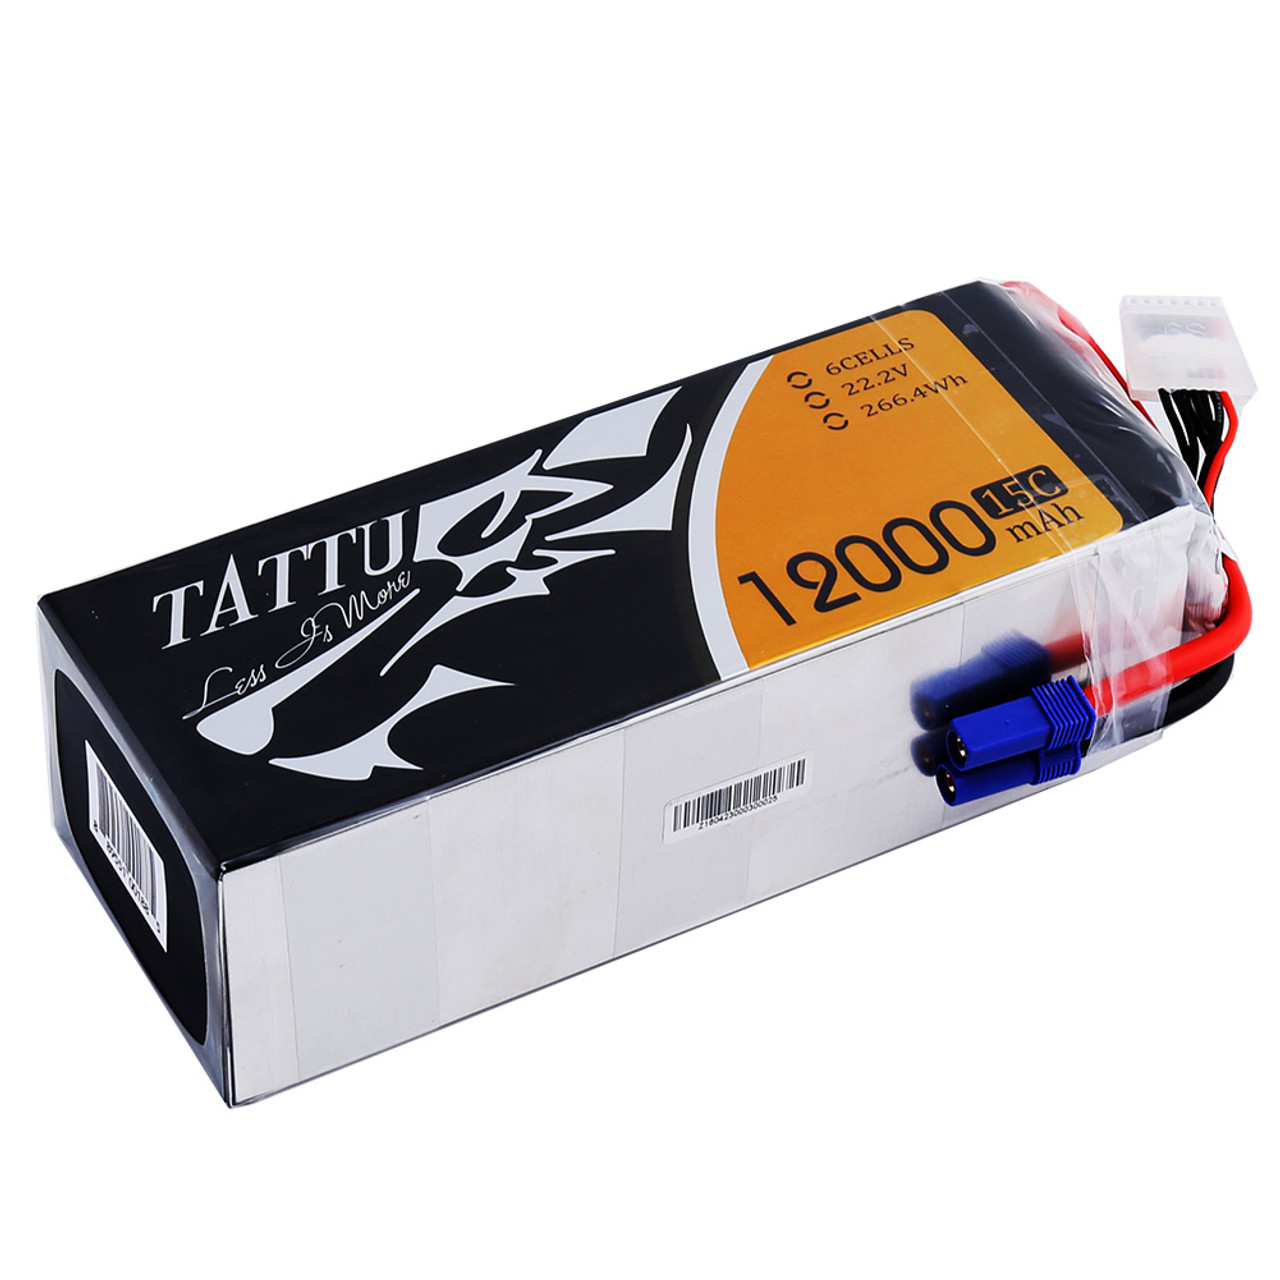 Tattu 22.2V 12000mA 15C 6S LiPo Battery Pack with AS150+XT150 Plug for DJI S800 DJI S900 S1000 Walkera QR X800 and Other Multicopter